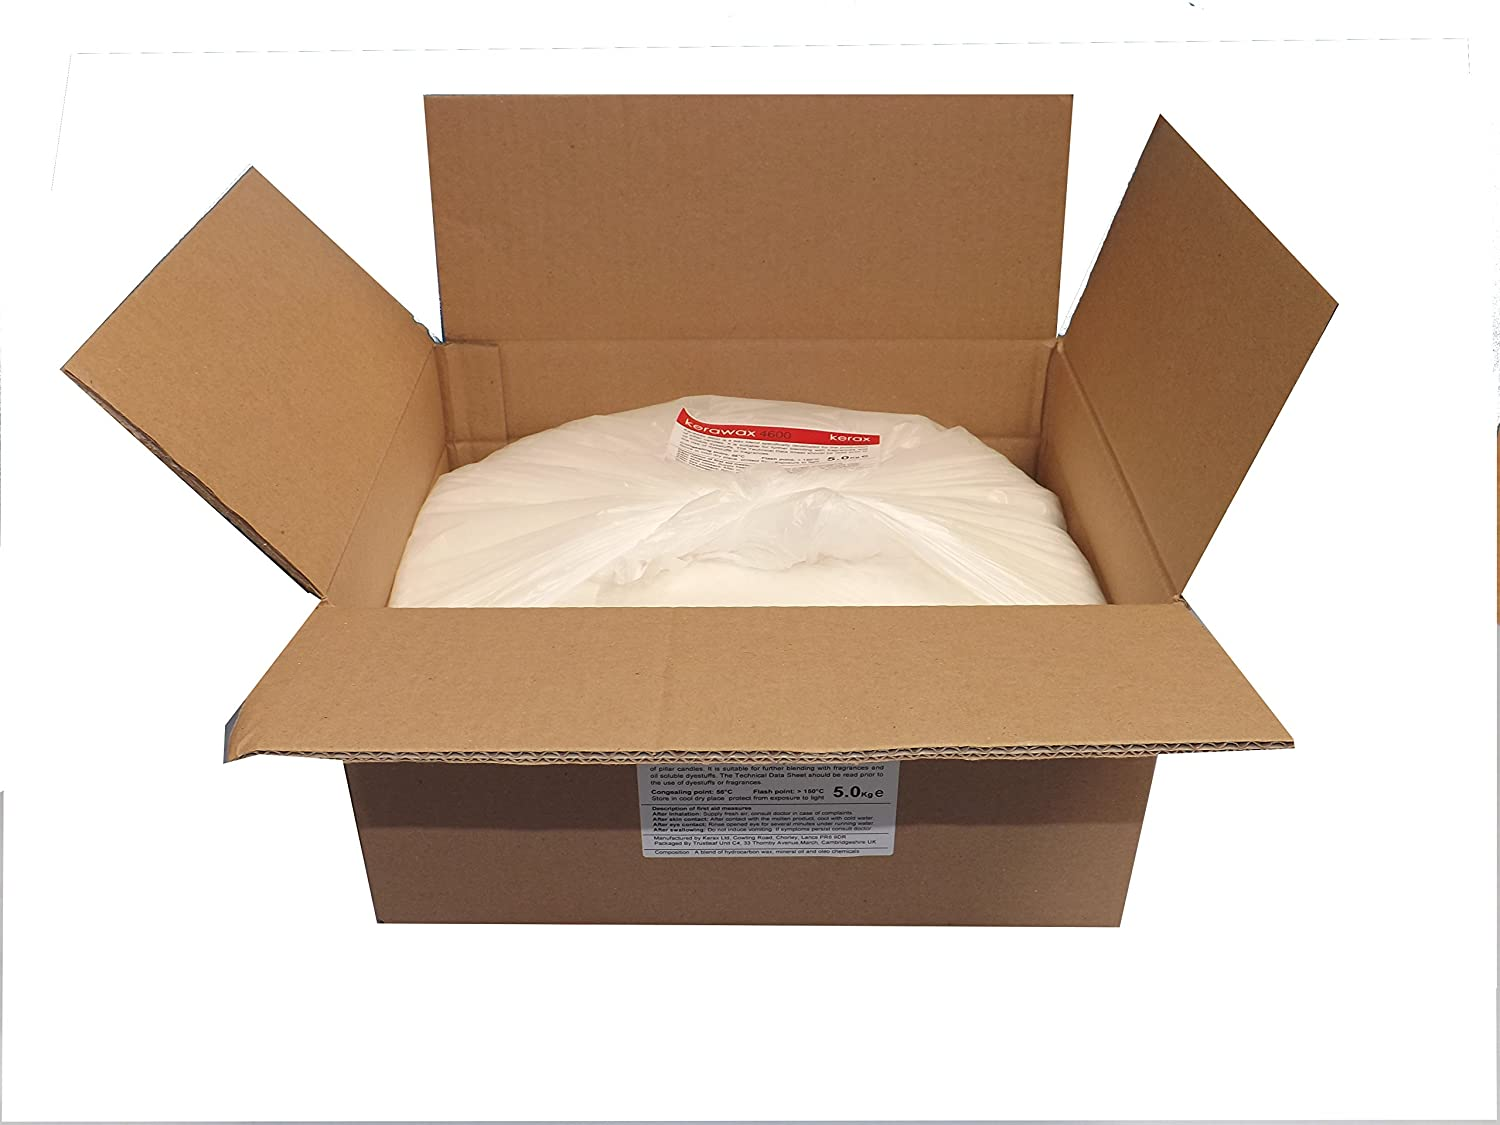 5kg Kerawax 4600 PILLAR CANDLE PARAFFIN WAX by KERAX with FREE NEXT WORKING DAY DELIVERY*